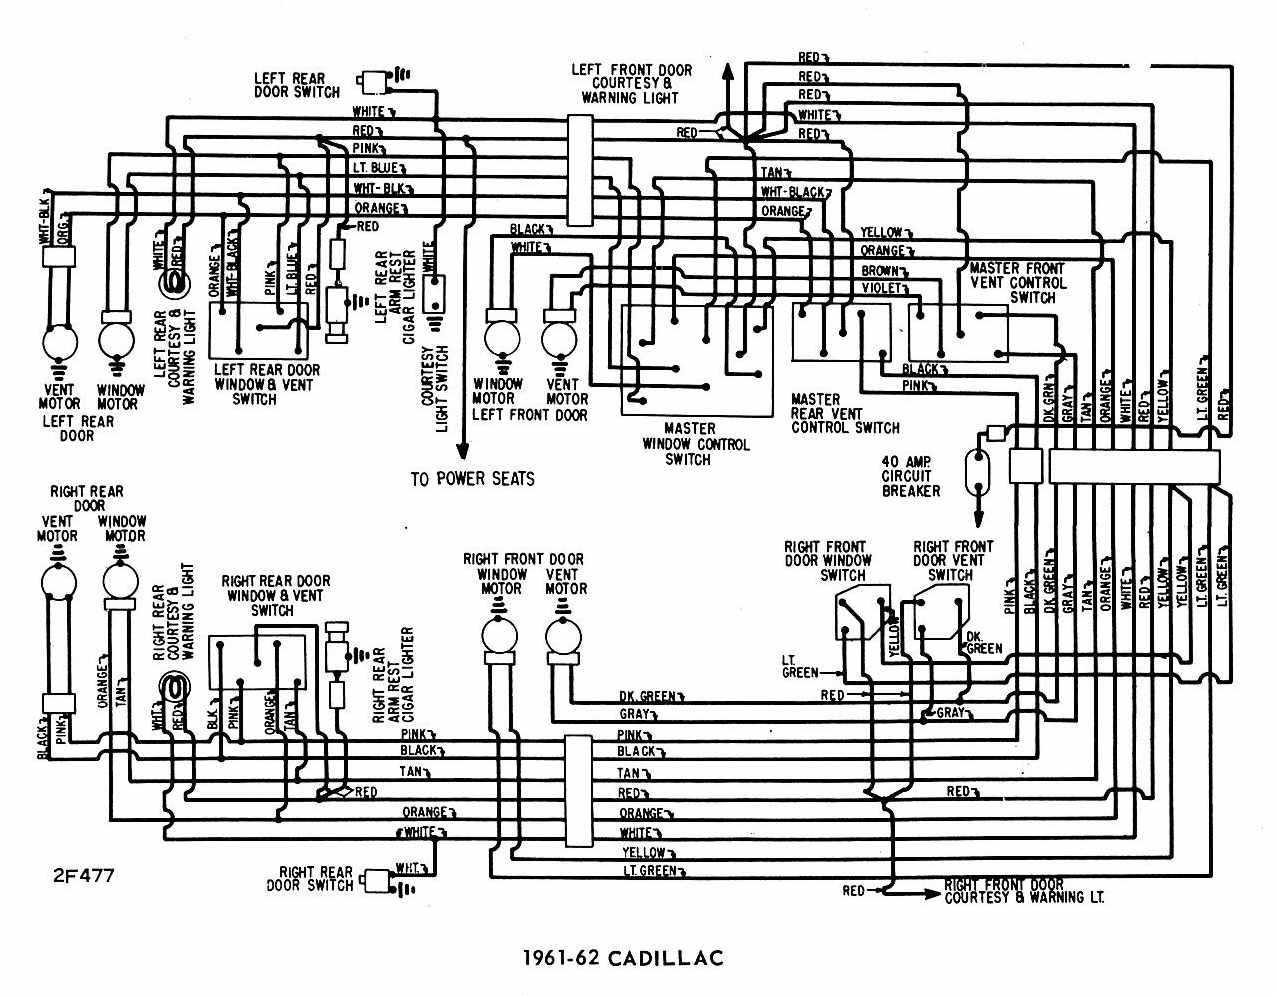 Cadillac Xlr Wiring Diagrams Guide And Troubleshooting Of Phono Plug Diagram 2004 Todays Rh 4 18 12 1813weddingbarn Com Trs To